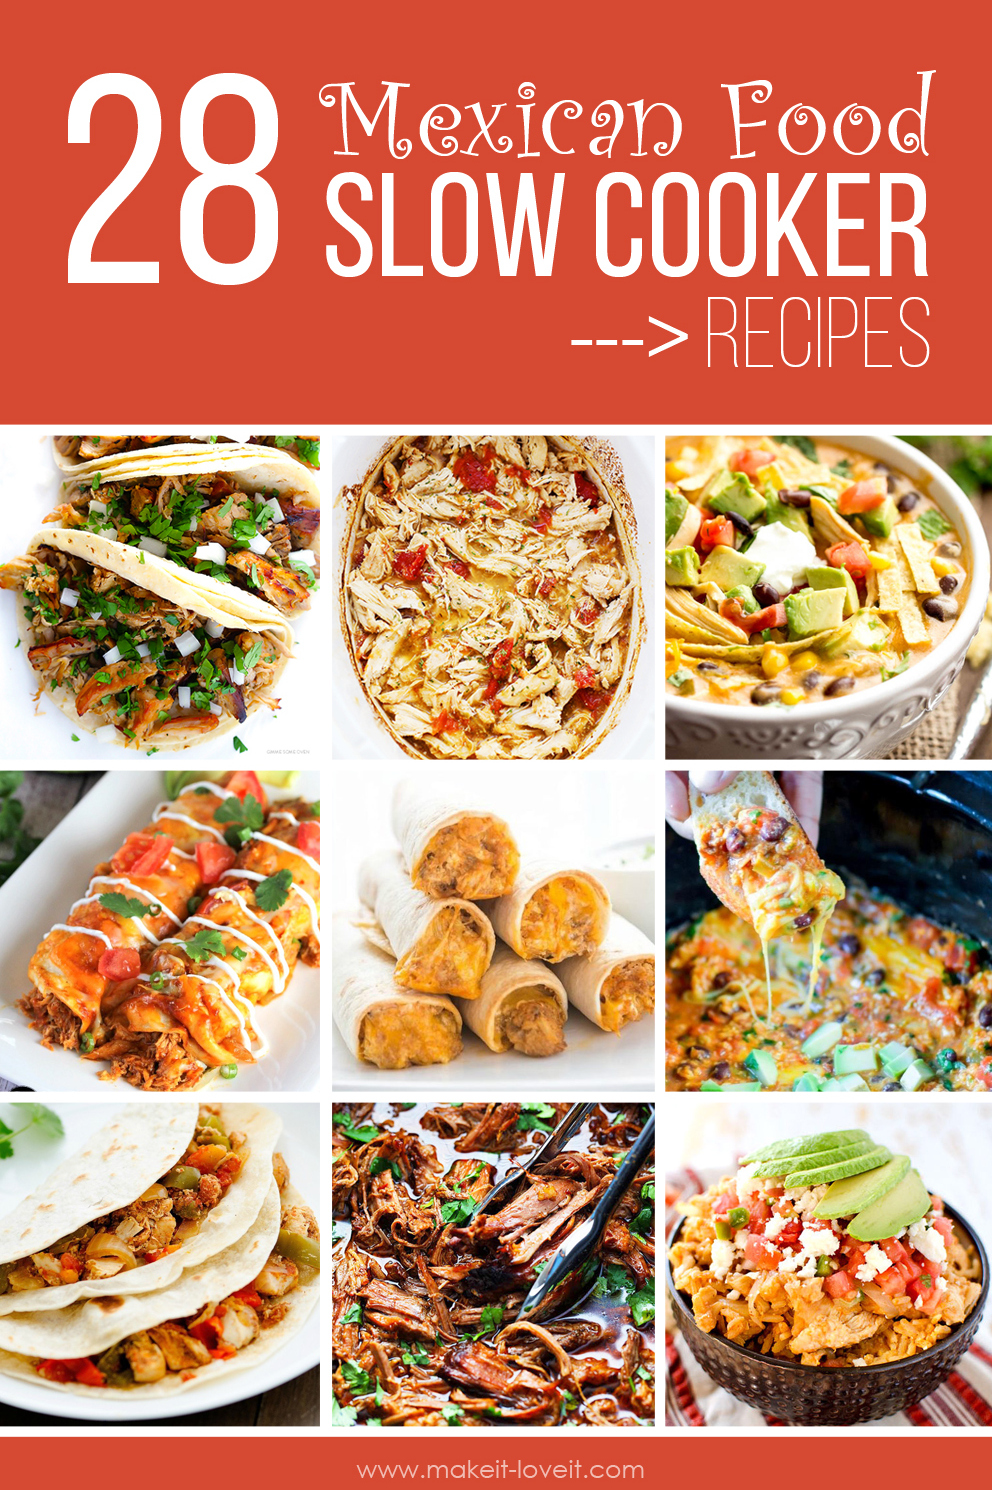 28 Favorite Mexican Food SLOW COOKER Recipes | via www.makeit-loveit.com